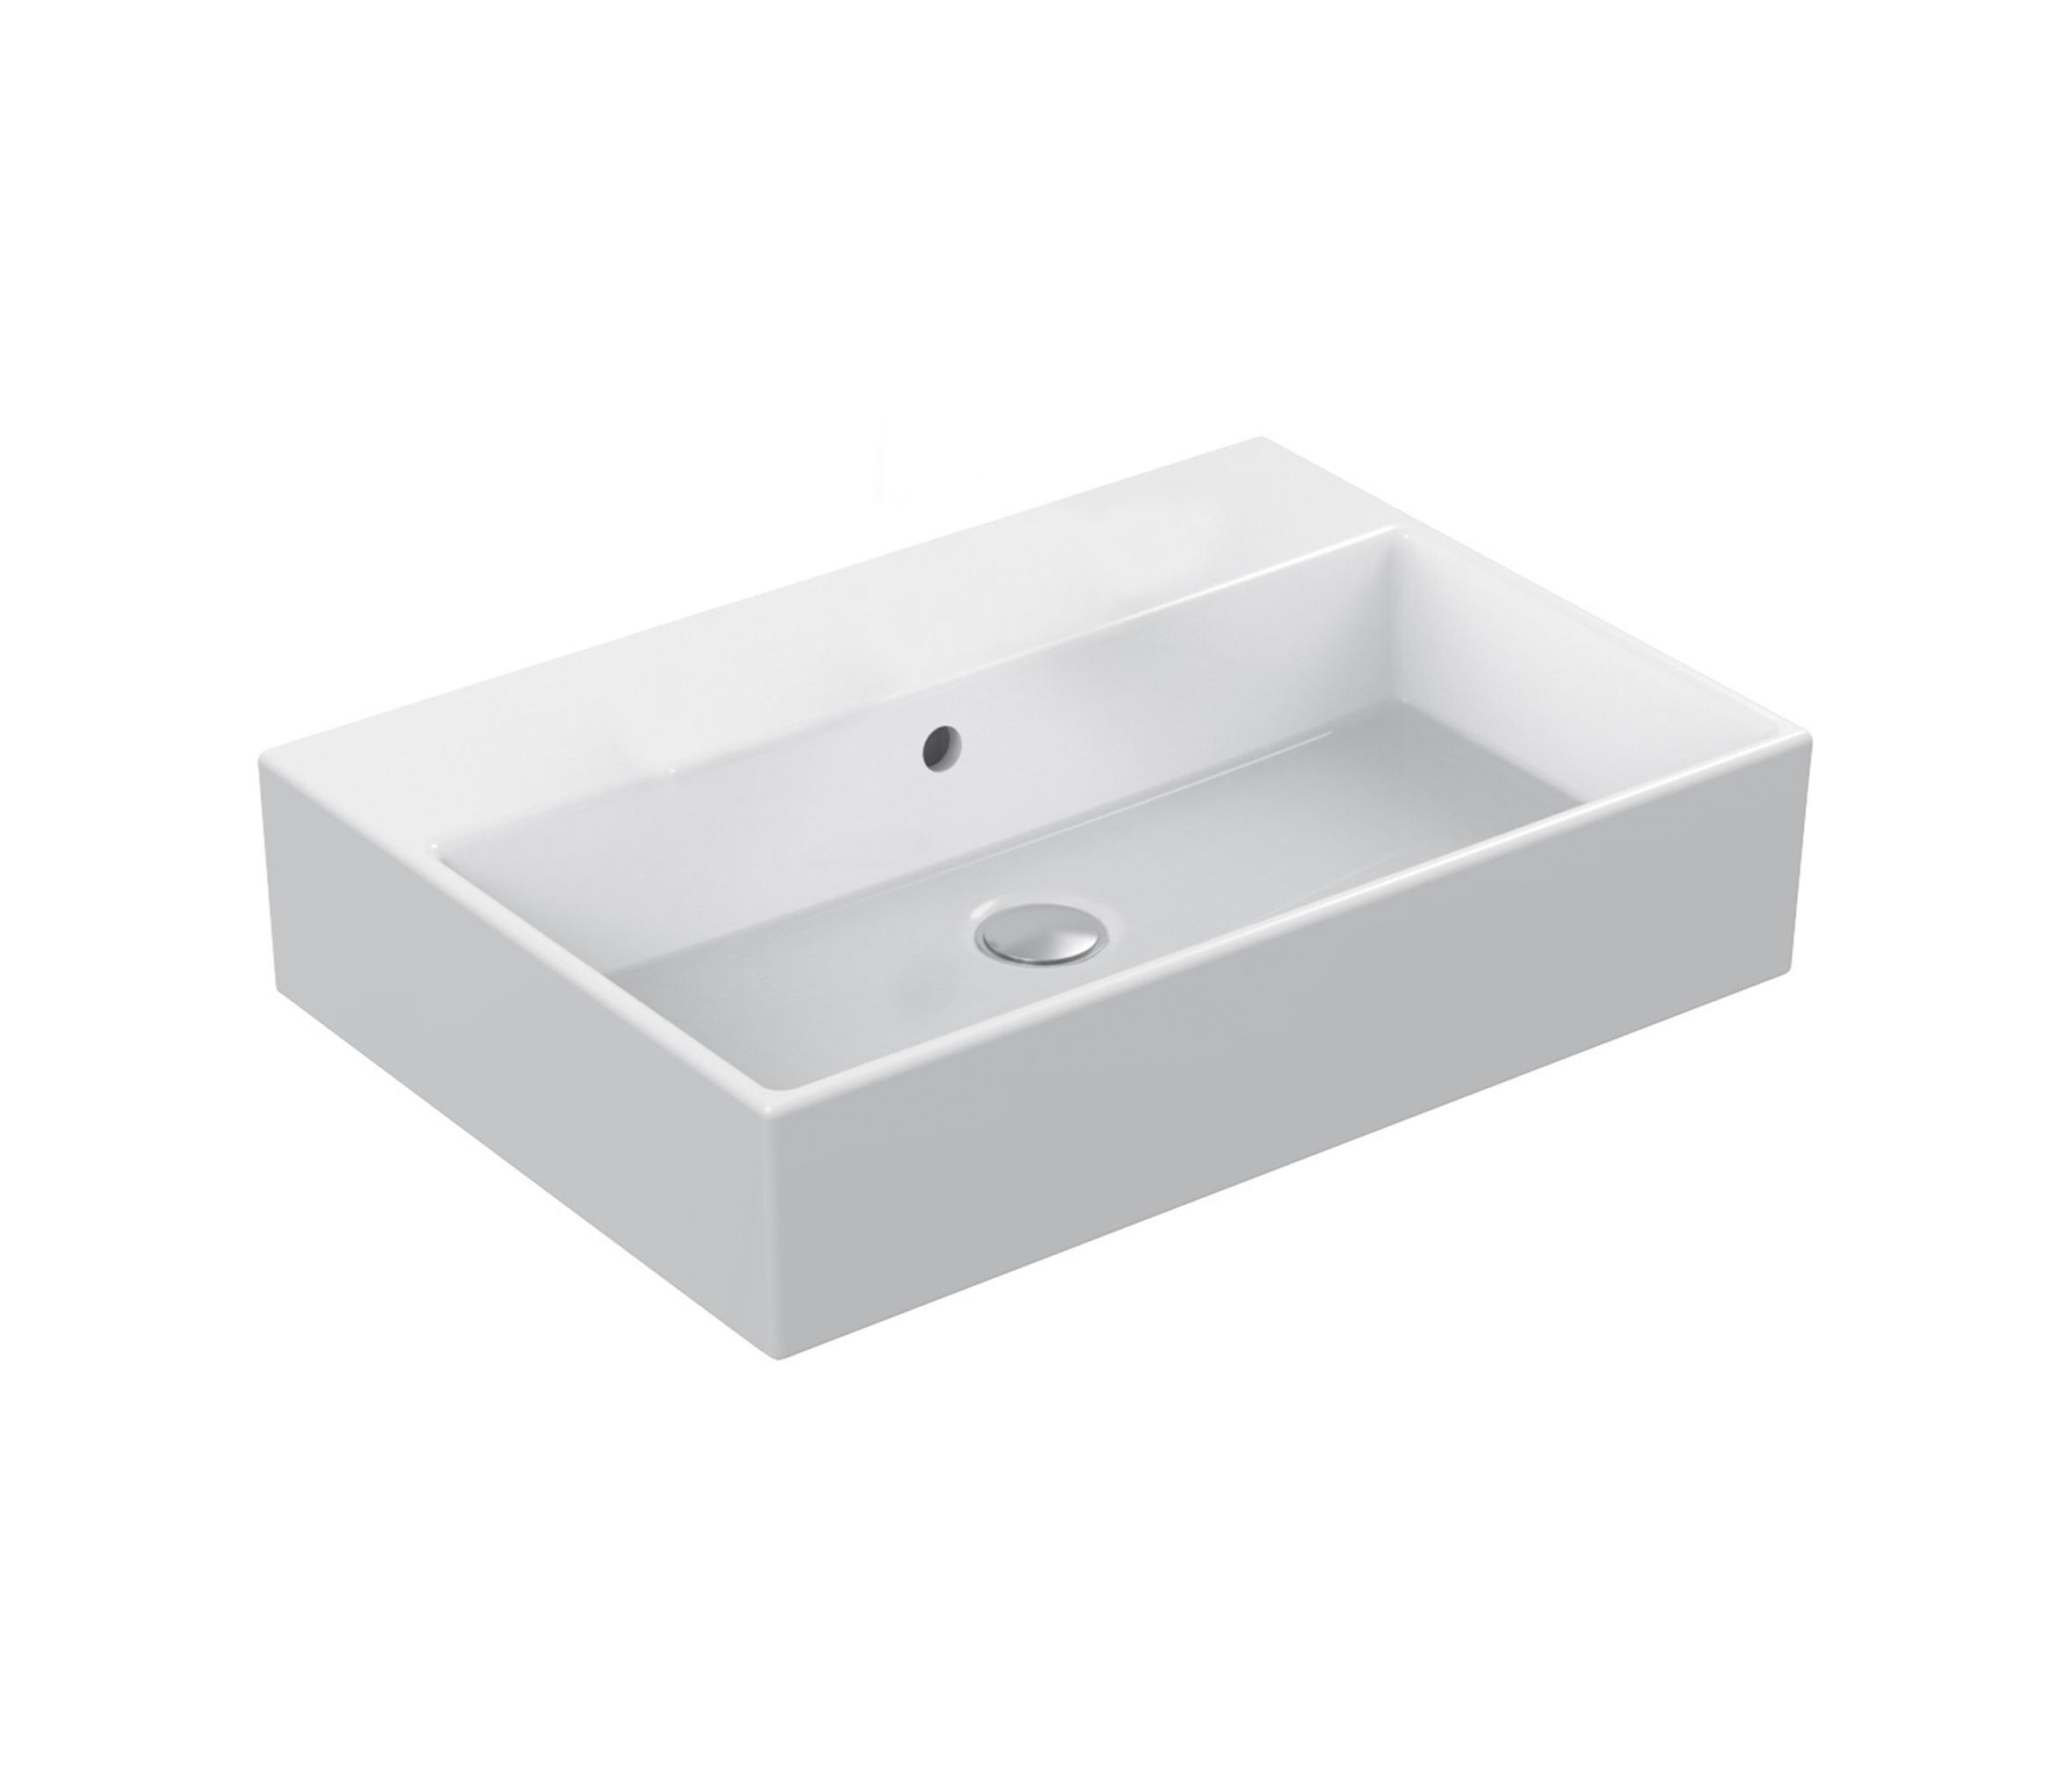 strada waschtisch 600mm ohne hahnloch wash basins from. Black Bedroom Furniture Sets. Home Design Ideas